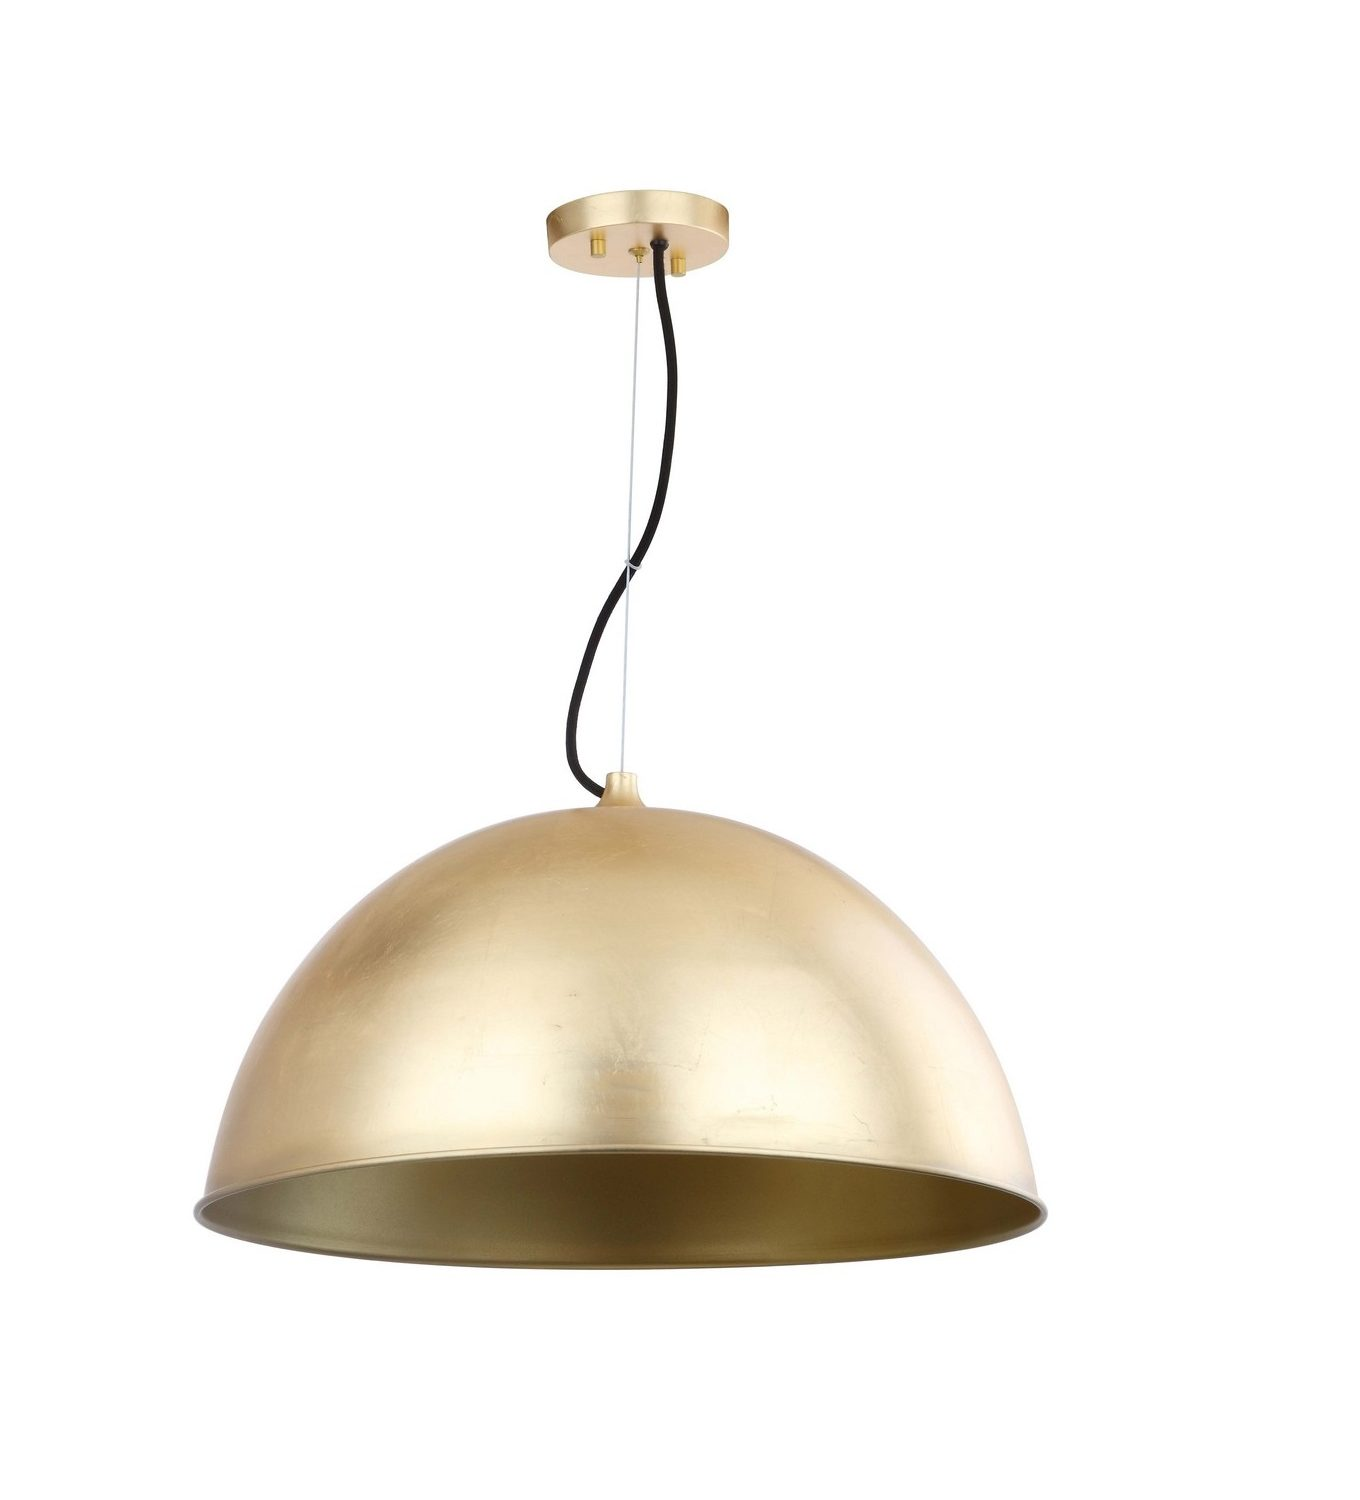 overstock antique pendant home product today garden adastra brass light shipping free